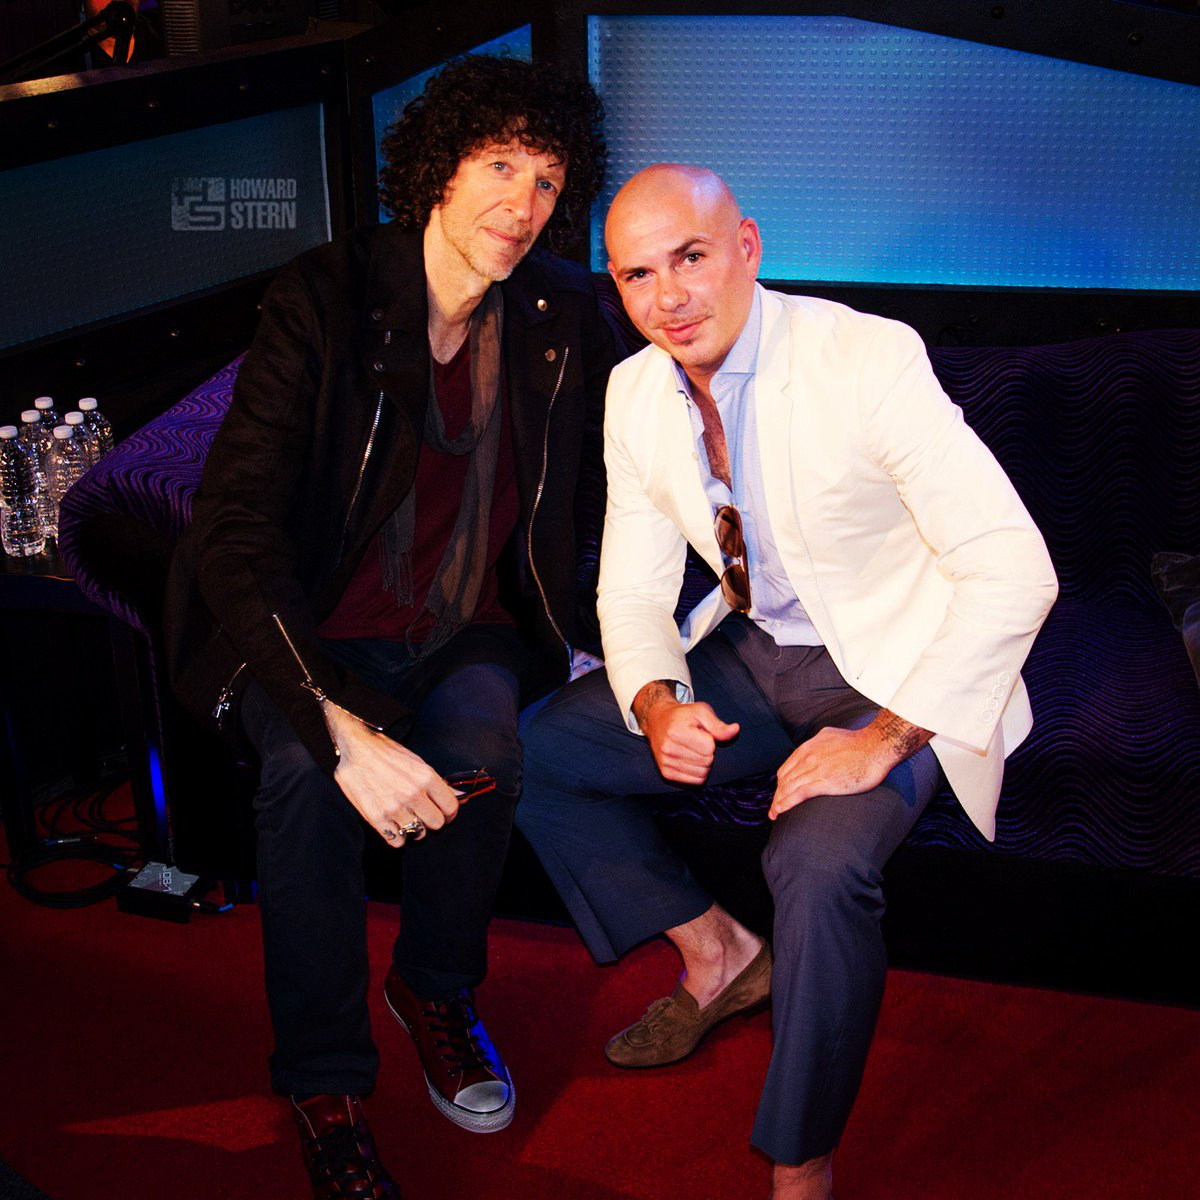 #TBT @HowardStern  @SIRIUSXM  #throwbackthursday #Dale https://t.co/L0...